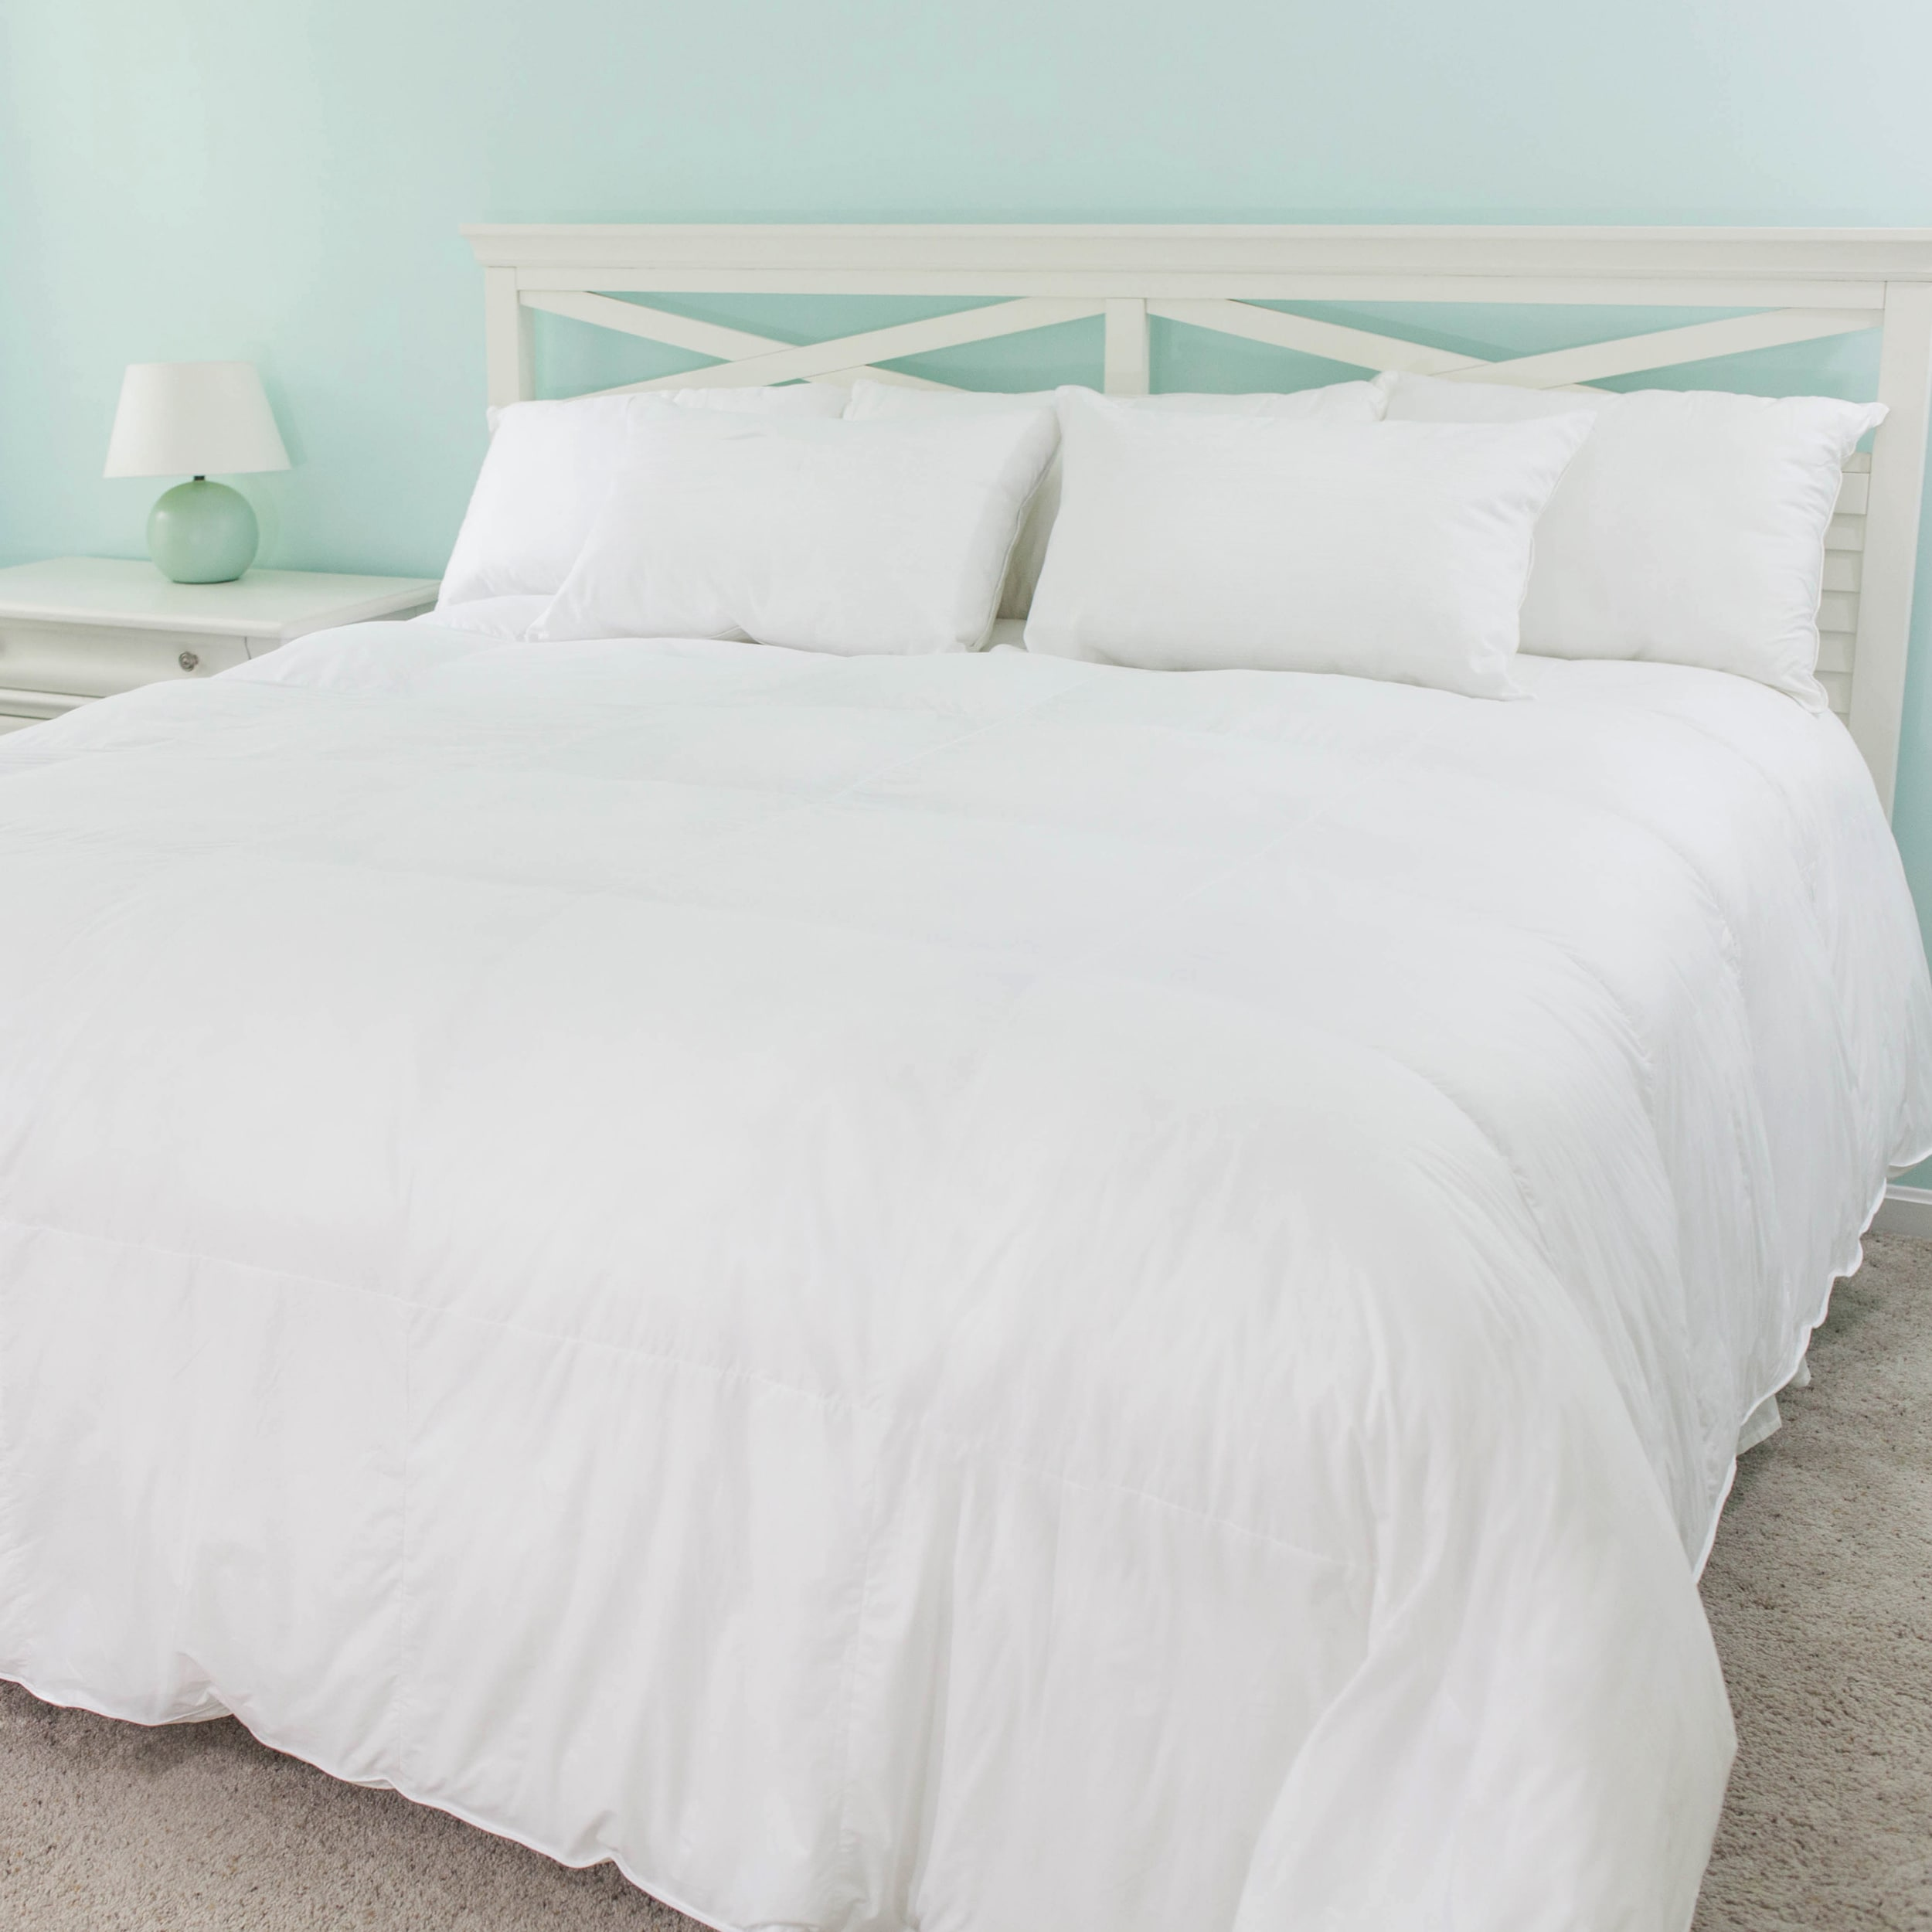 espan reviews us how down coast pacific classic buy to a comforter